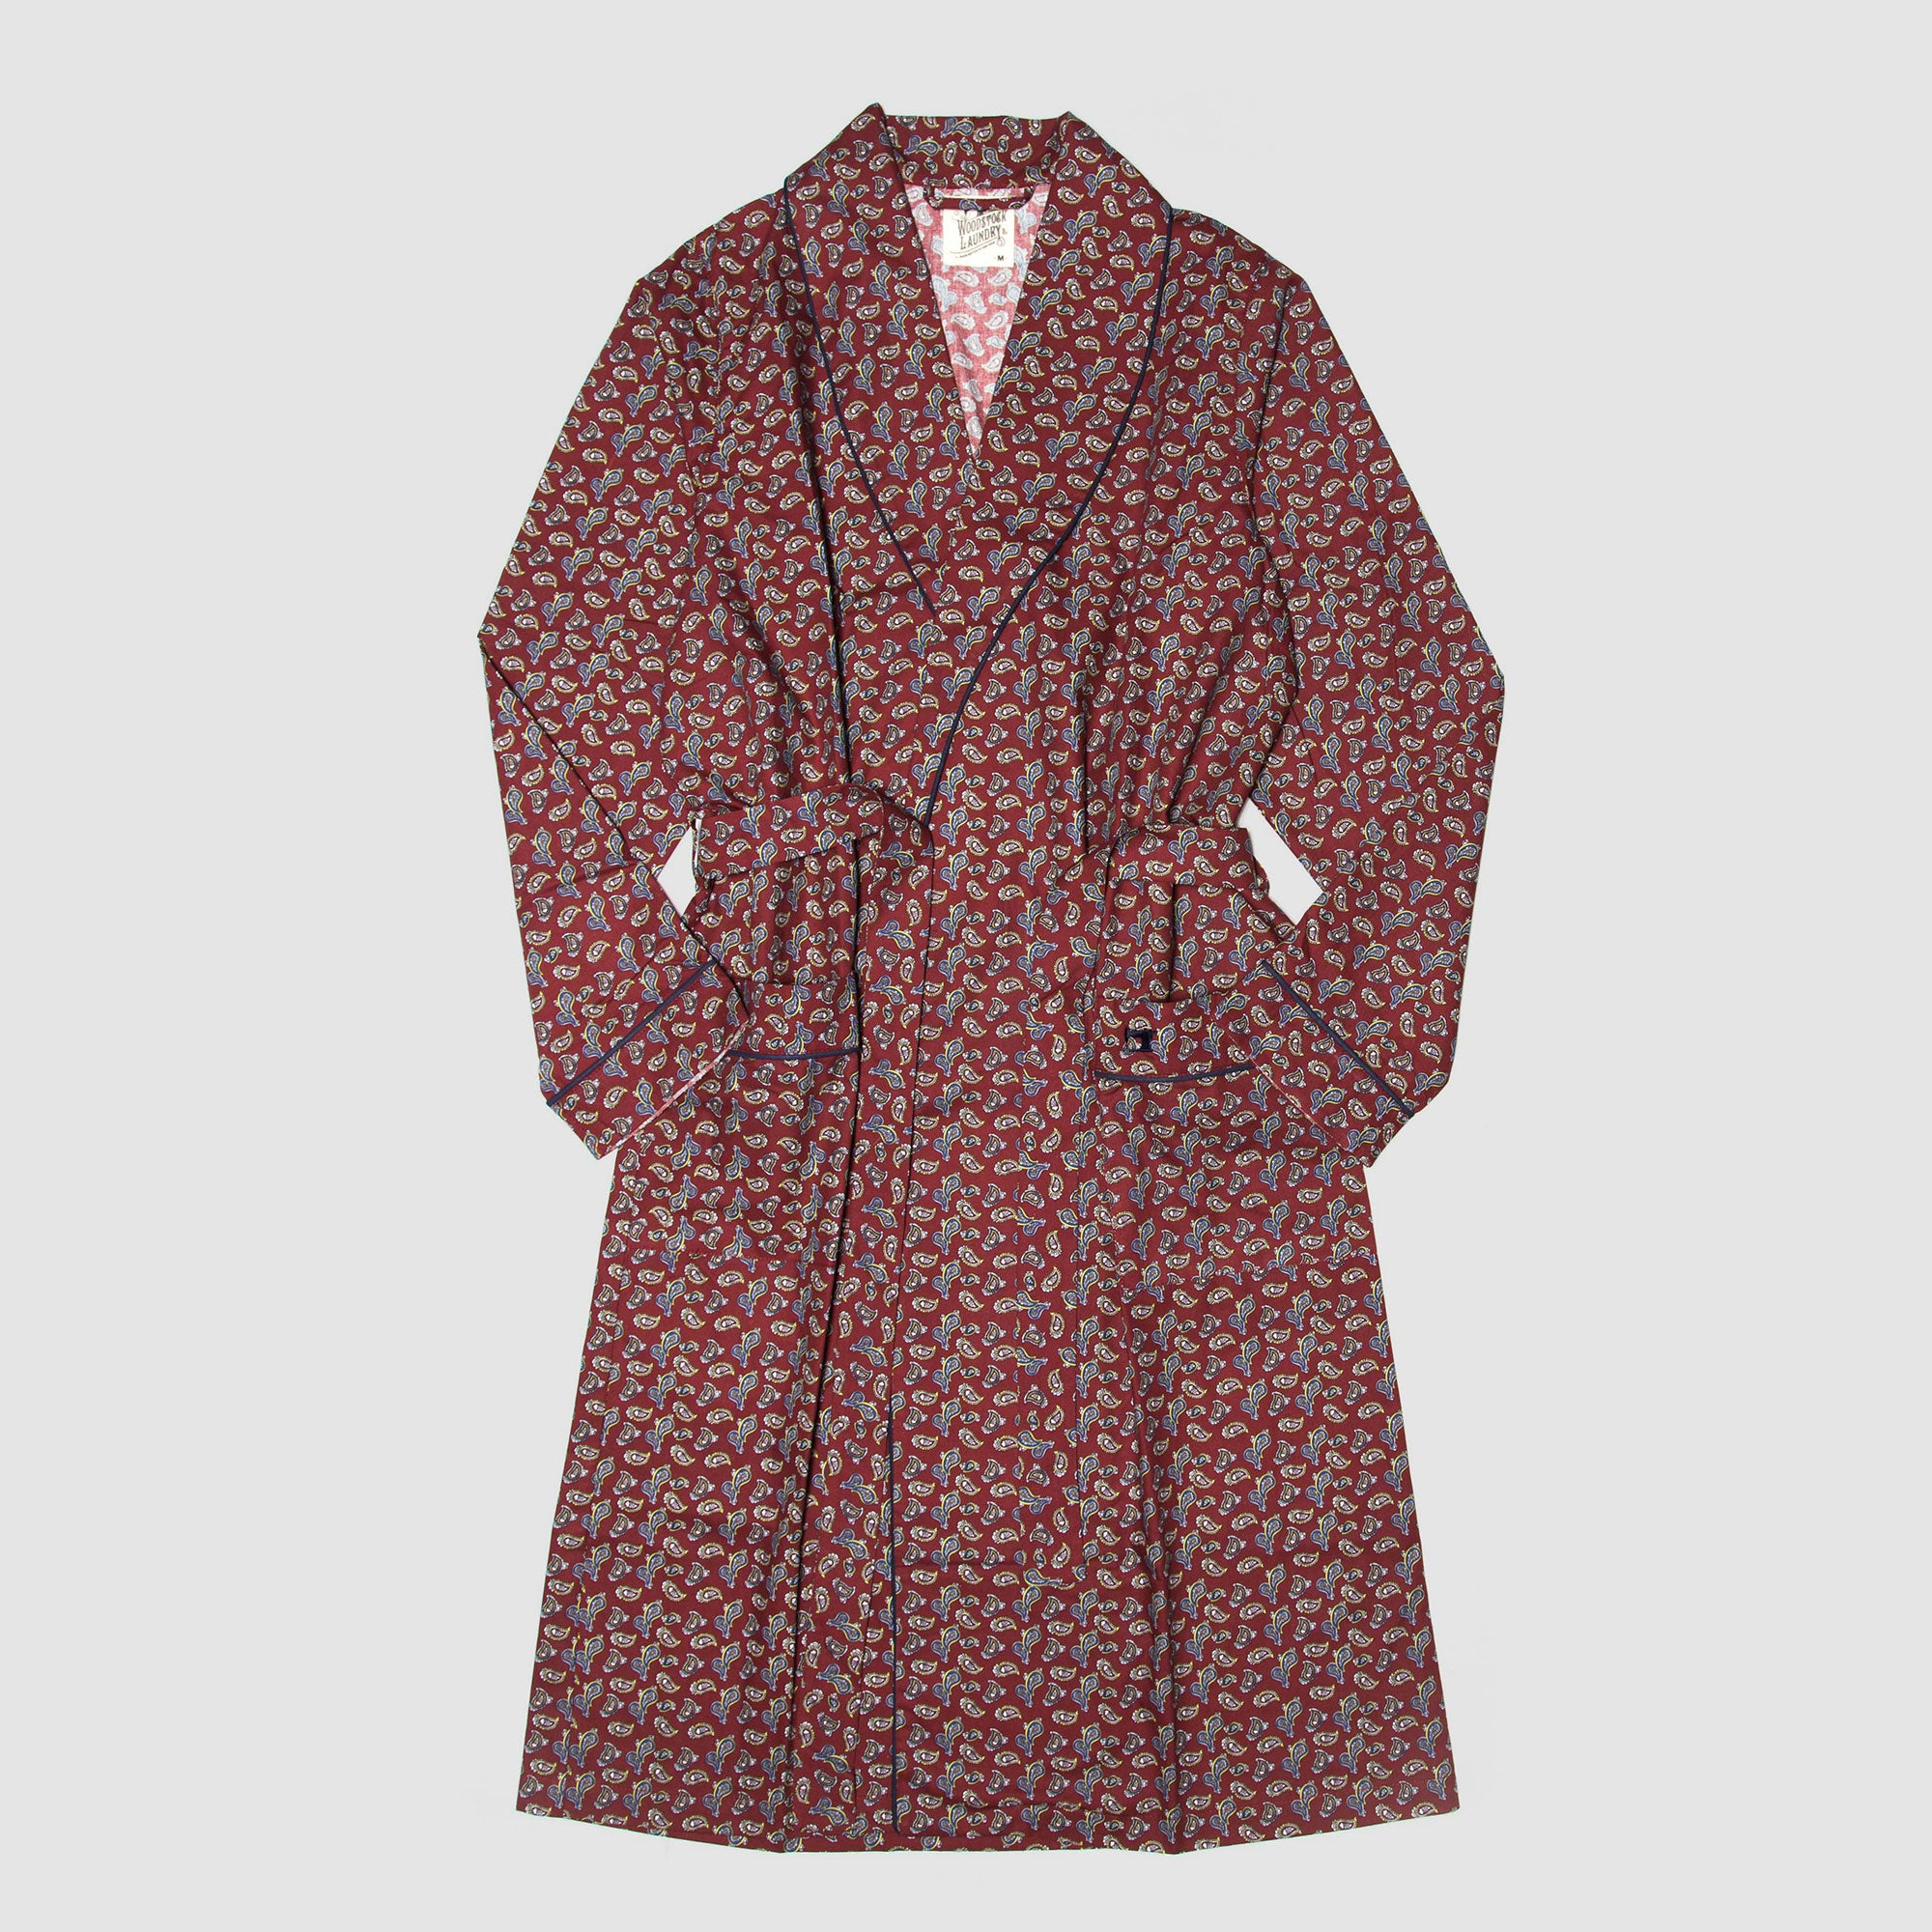 Gown Paisley Park Maroon - Woodstock Laundry